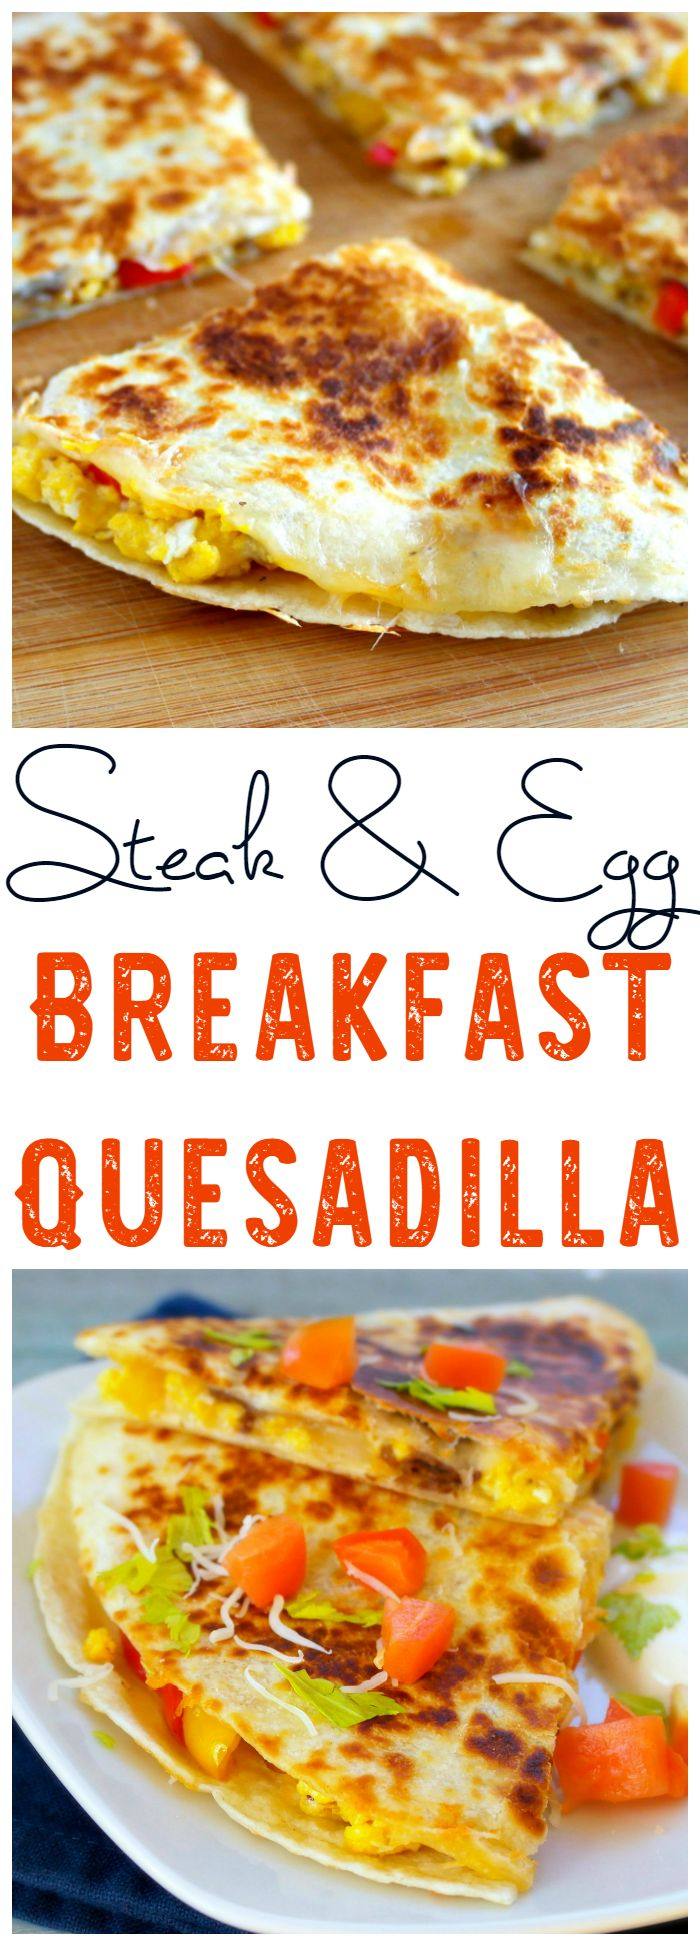 This Steak & Egg Breakfast Quesadilla makes a great breakfast, but is also perfect for dinner!